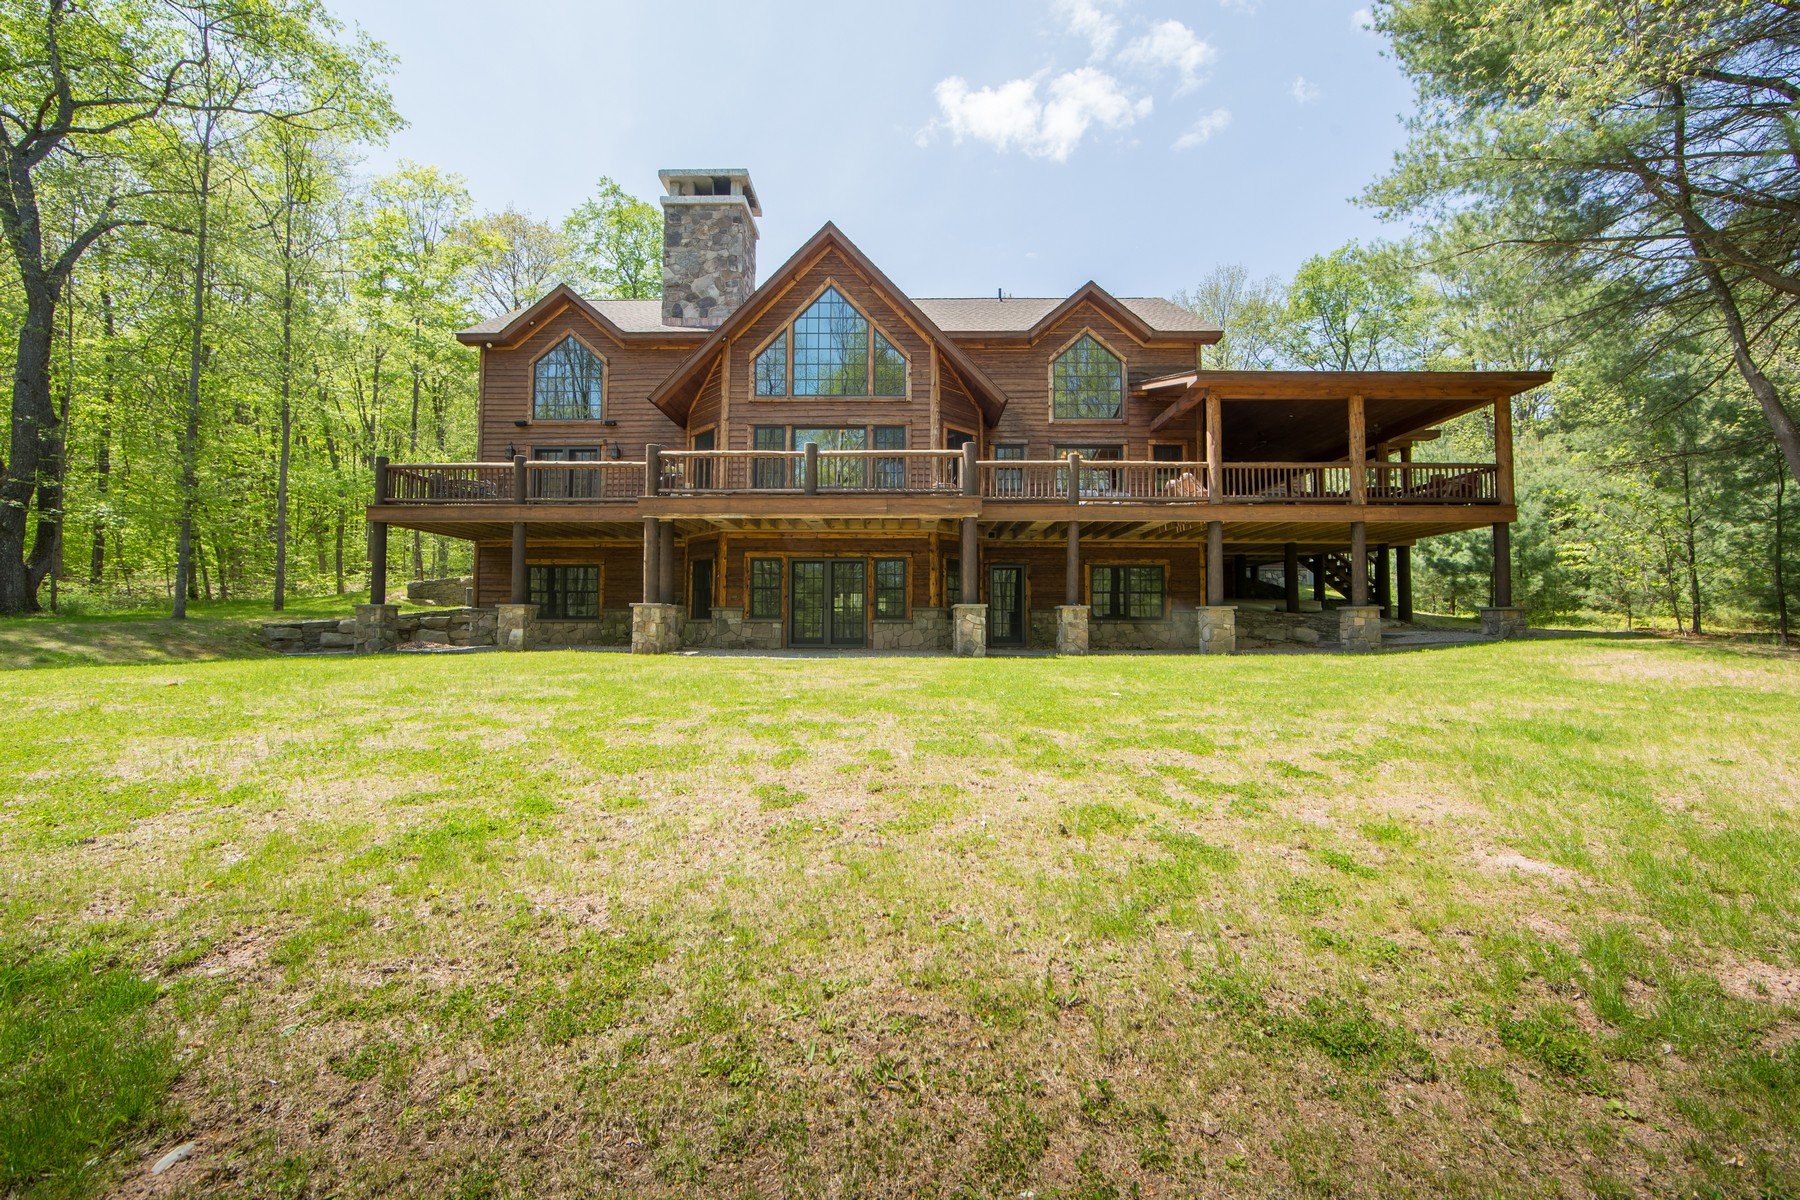 Single Family Home for Sale at Forest Edge Lodge 427 Woodstone Trail Bethel, New York 12720 United States